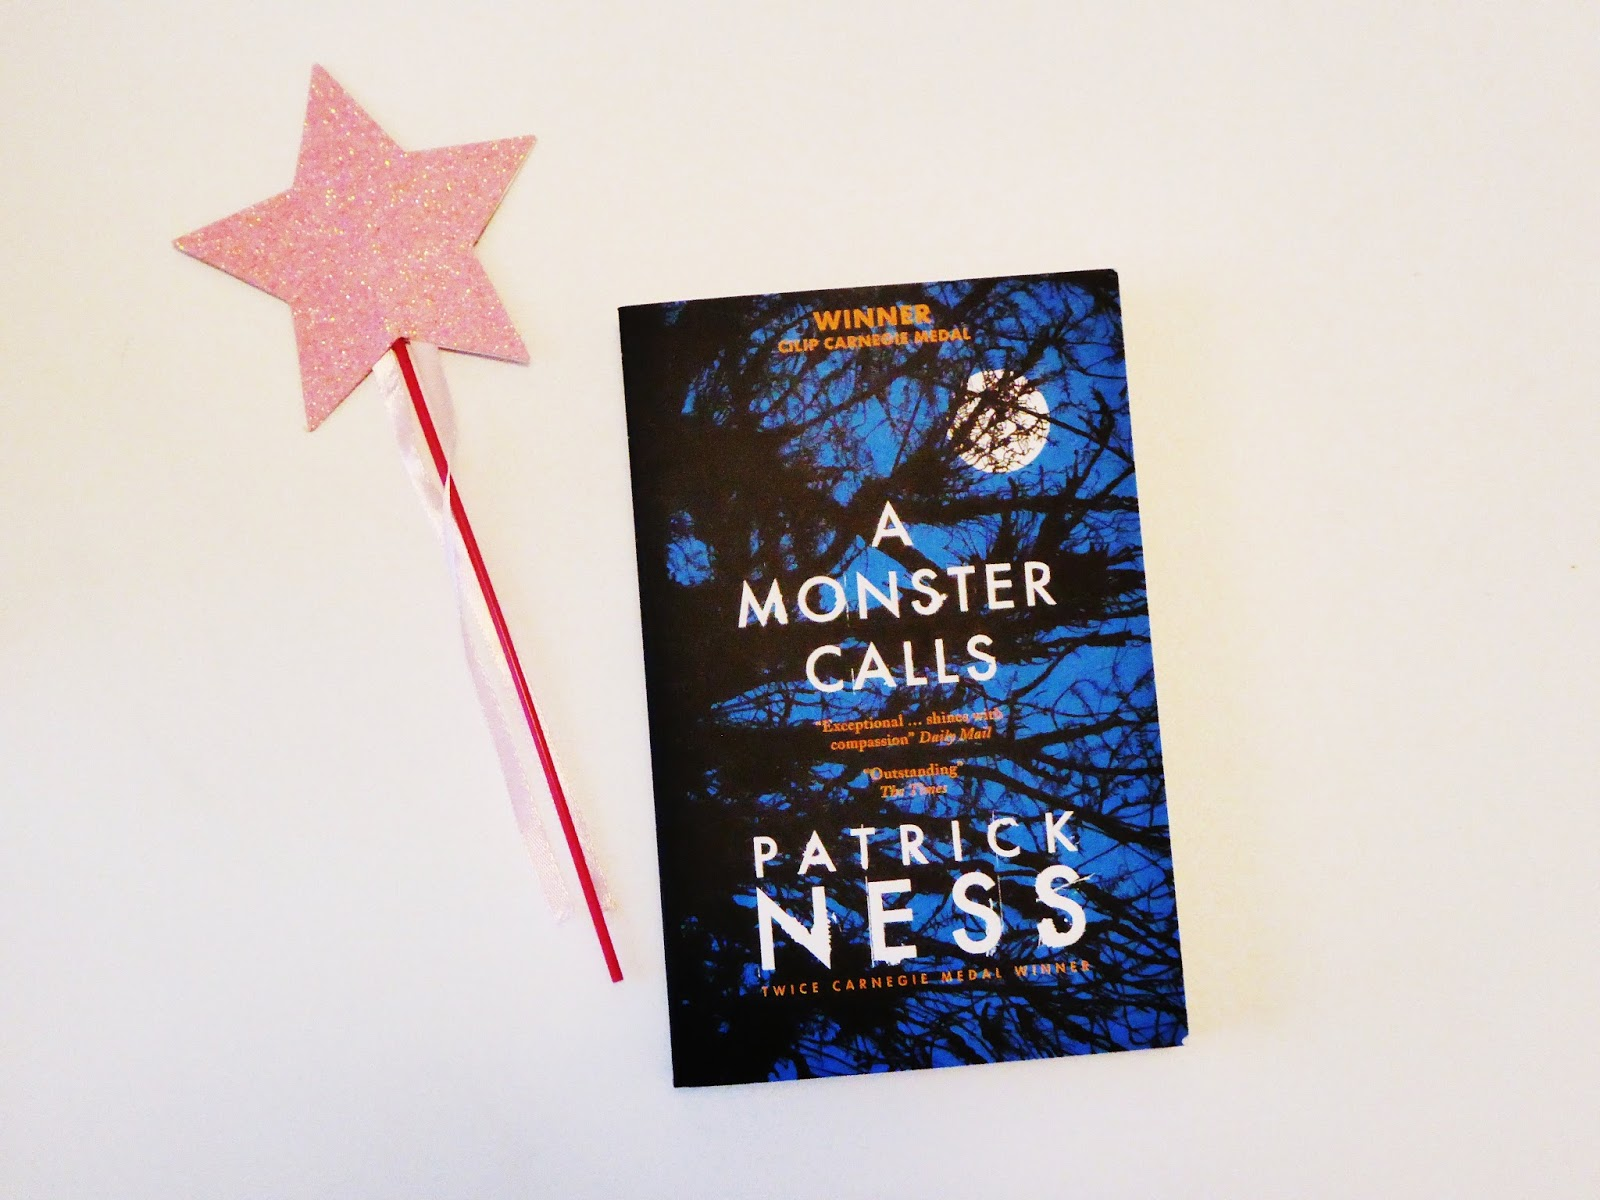 A Monster Calls by Patrick Ness | Book Review